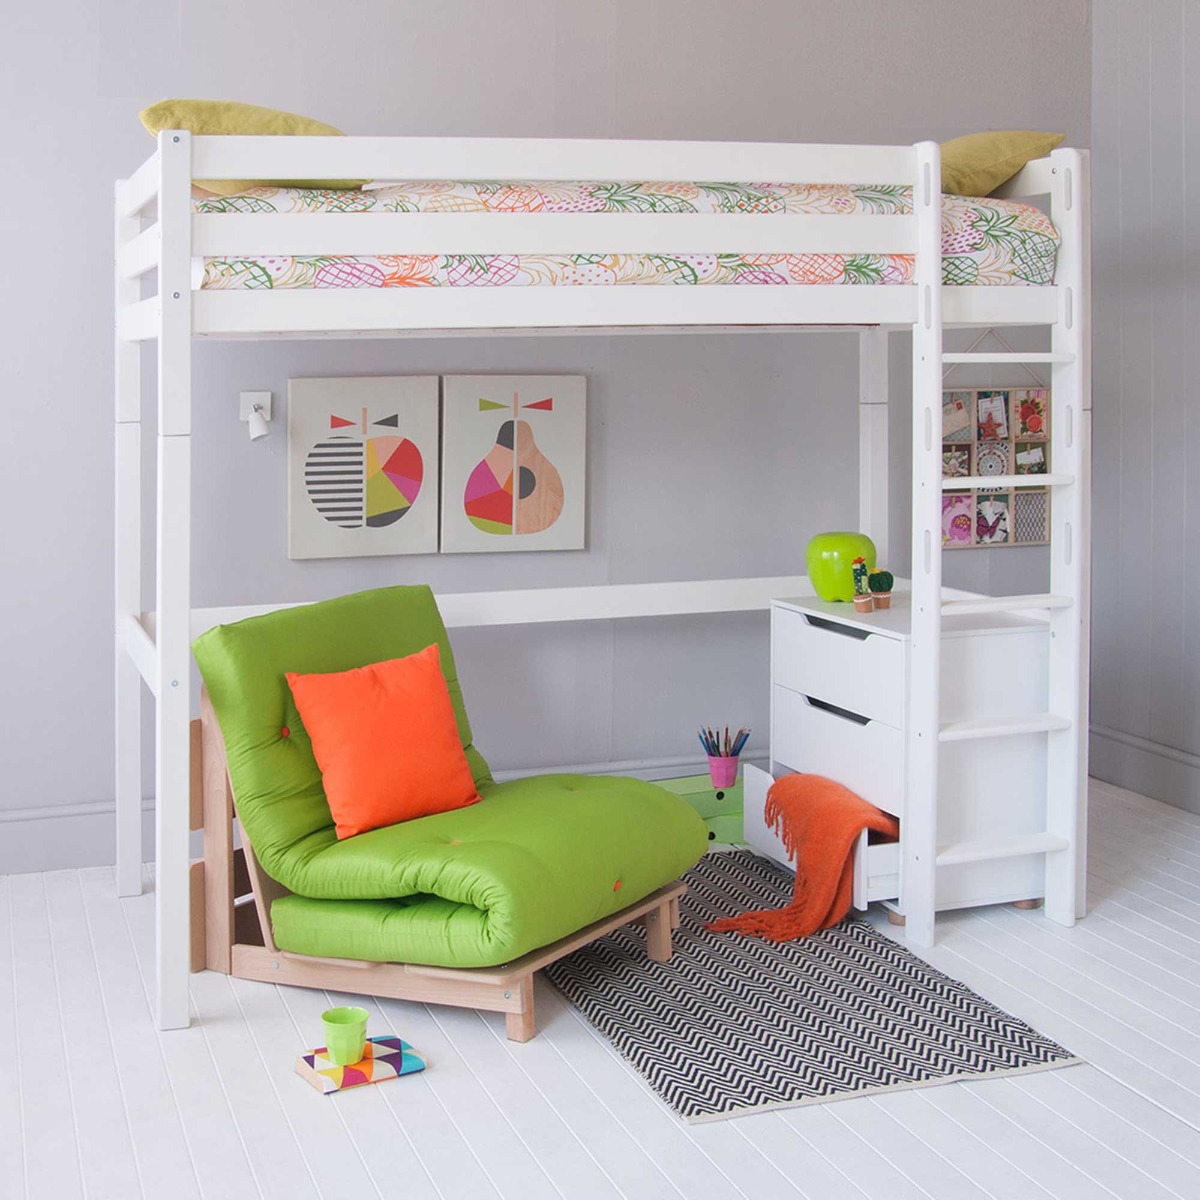 Buddy Childrens Beech Highsleeper Loft Bed With Chest of Drawers and Futon Chair Bed